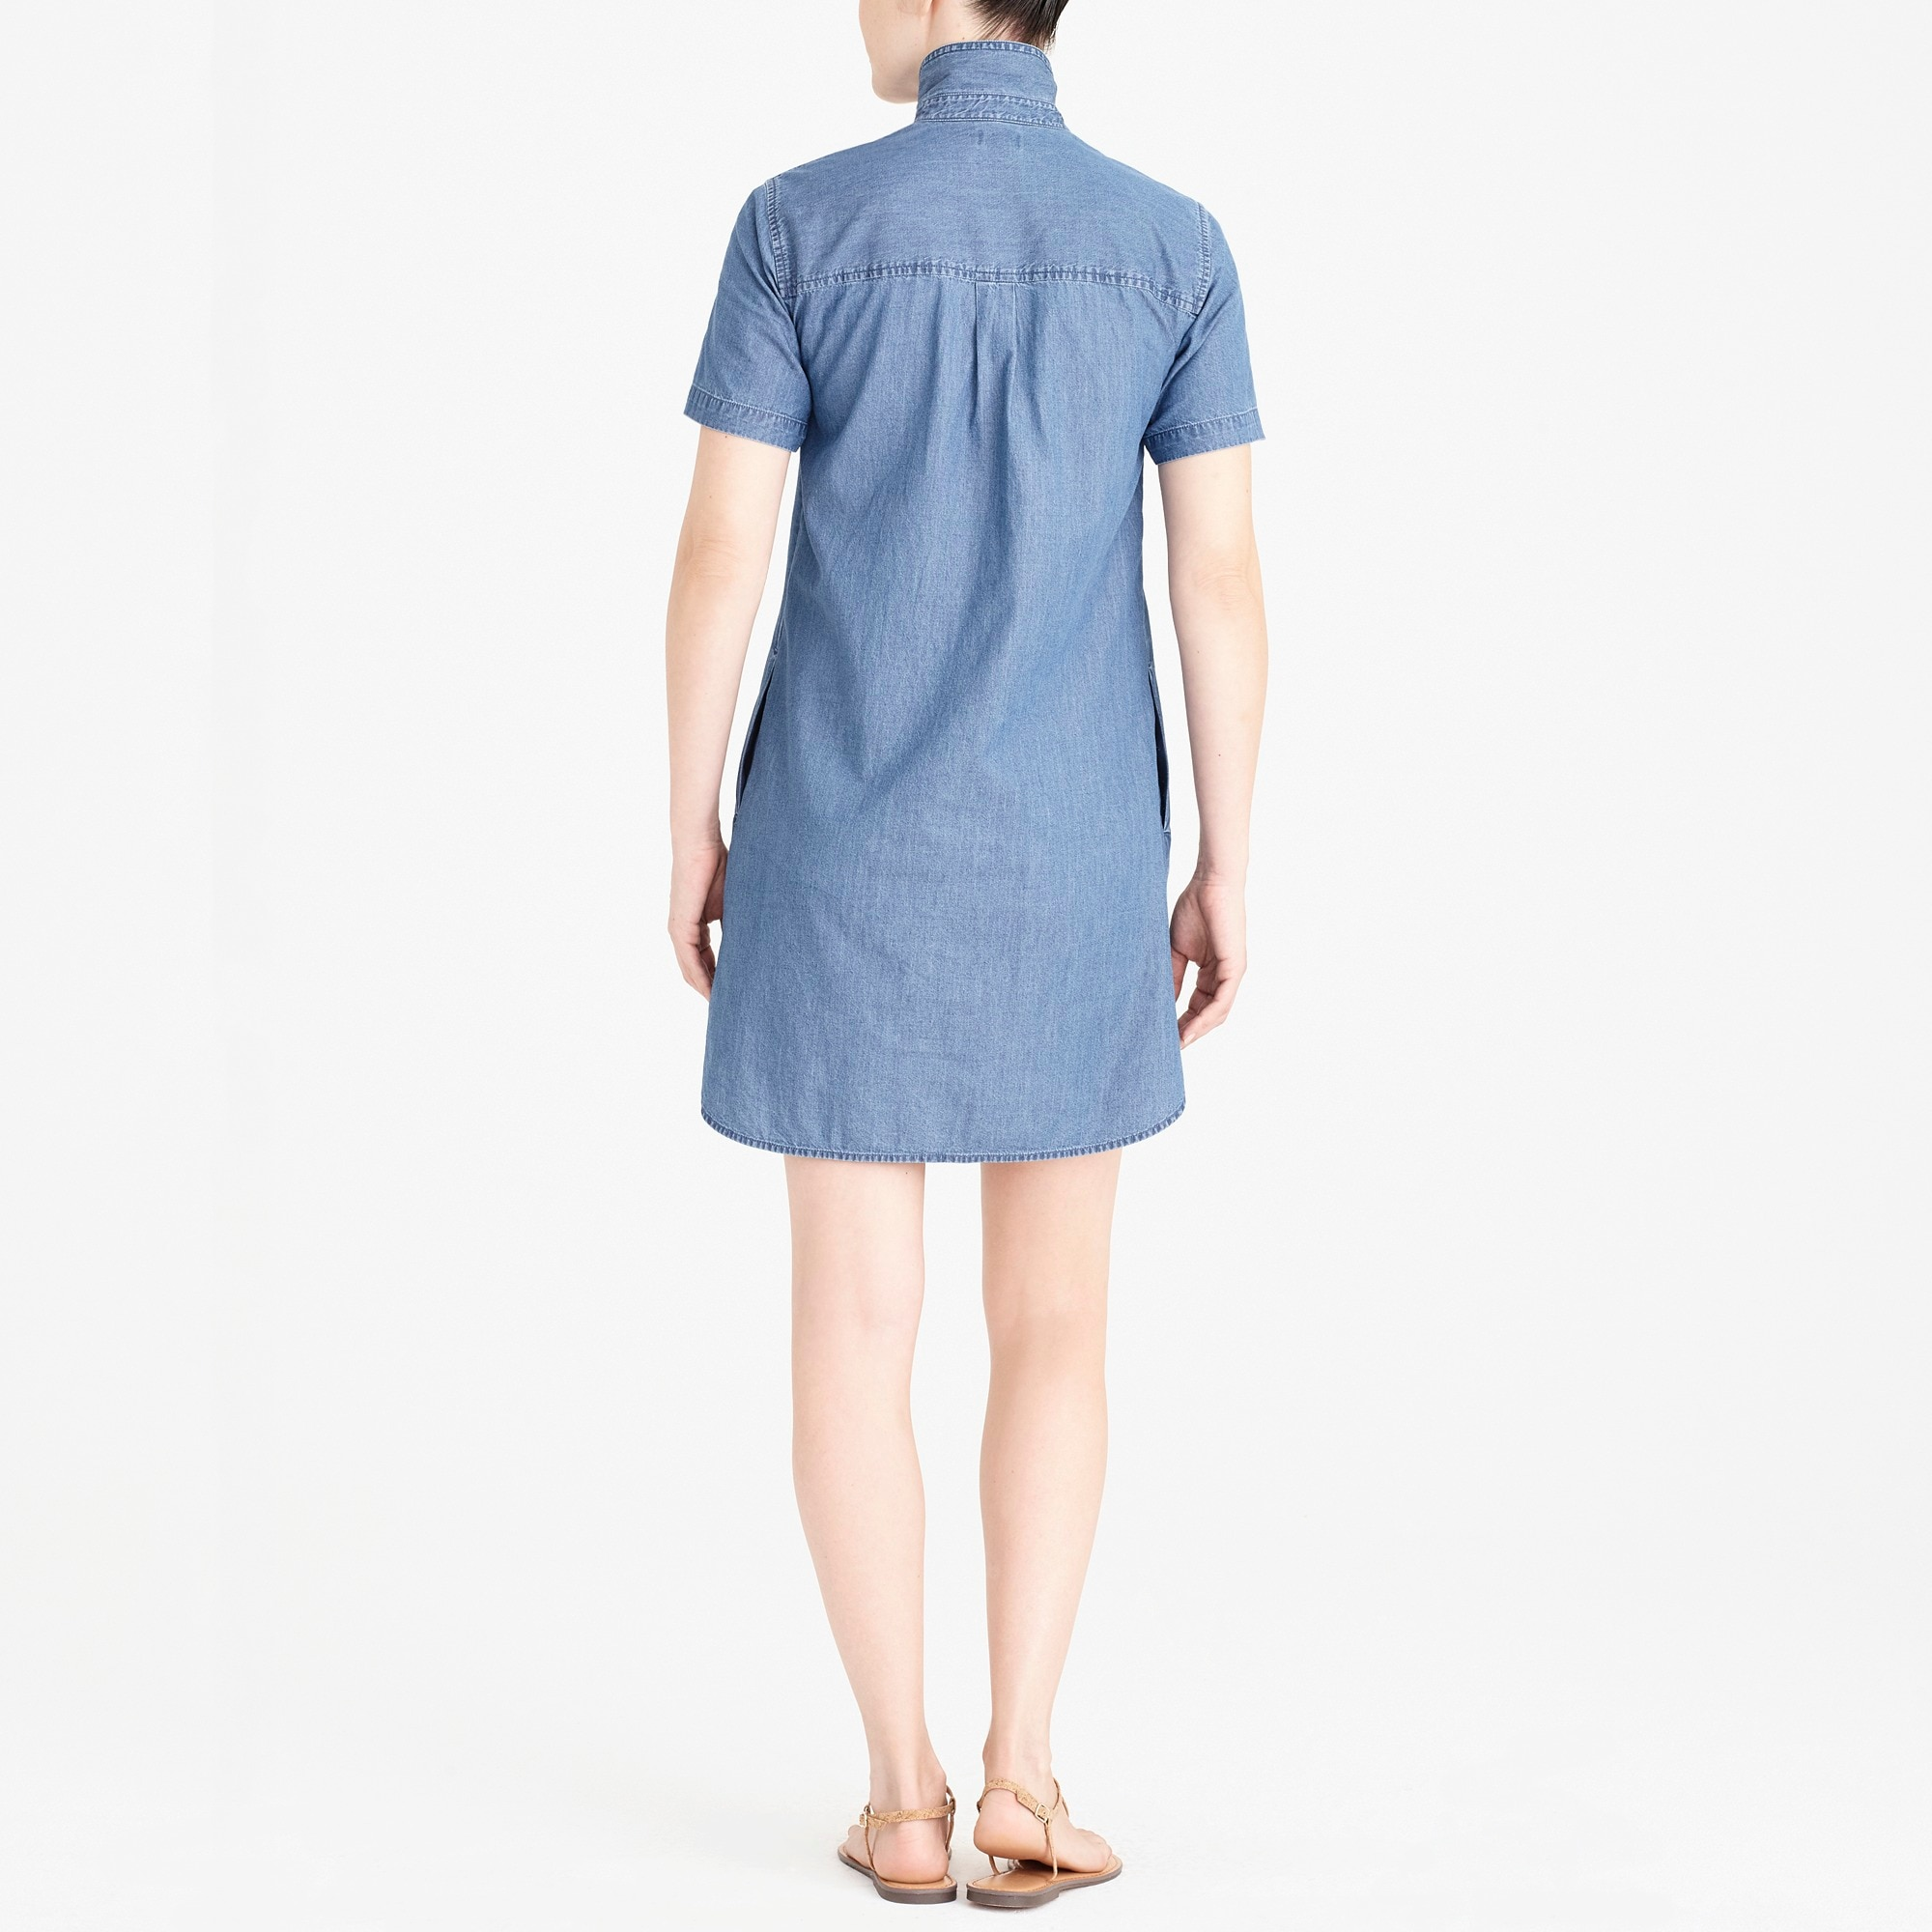 Image 3 for Chambray shirtdress